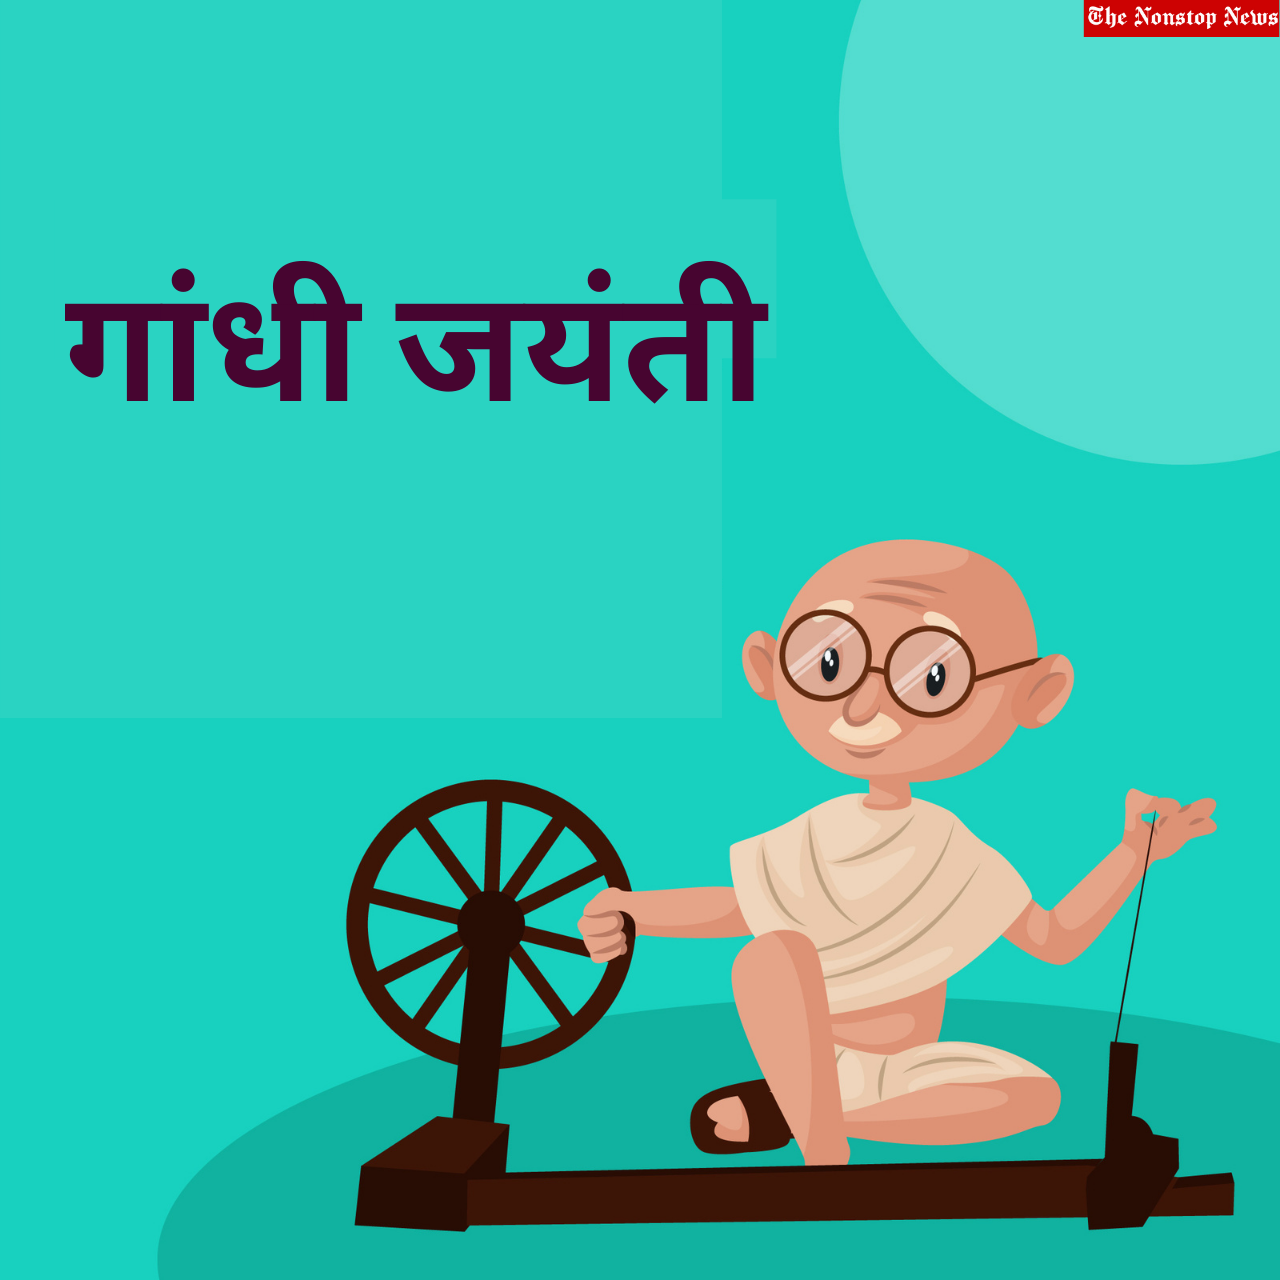 Gandhi Jayanti 2021 Marathi Wishes, Quotes, Messages, Wishes, Greetings, and HD Images to share